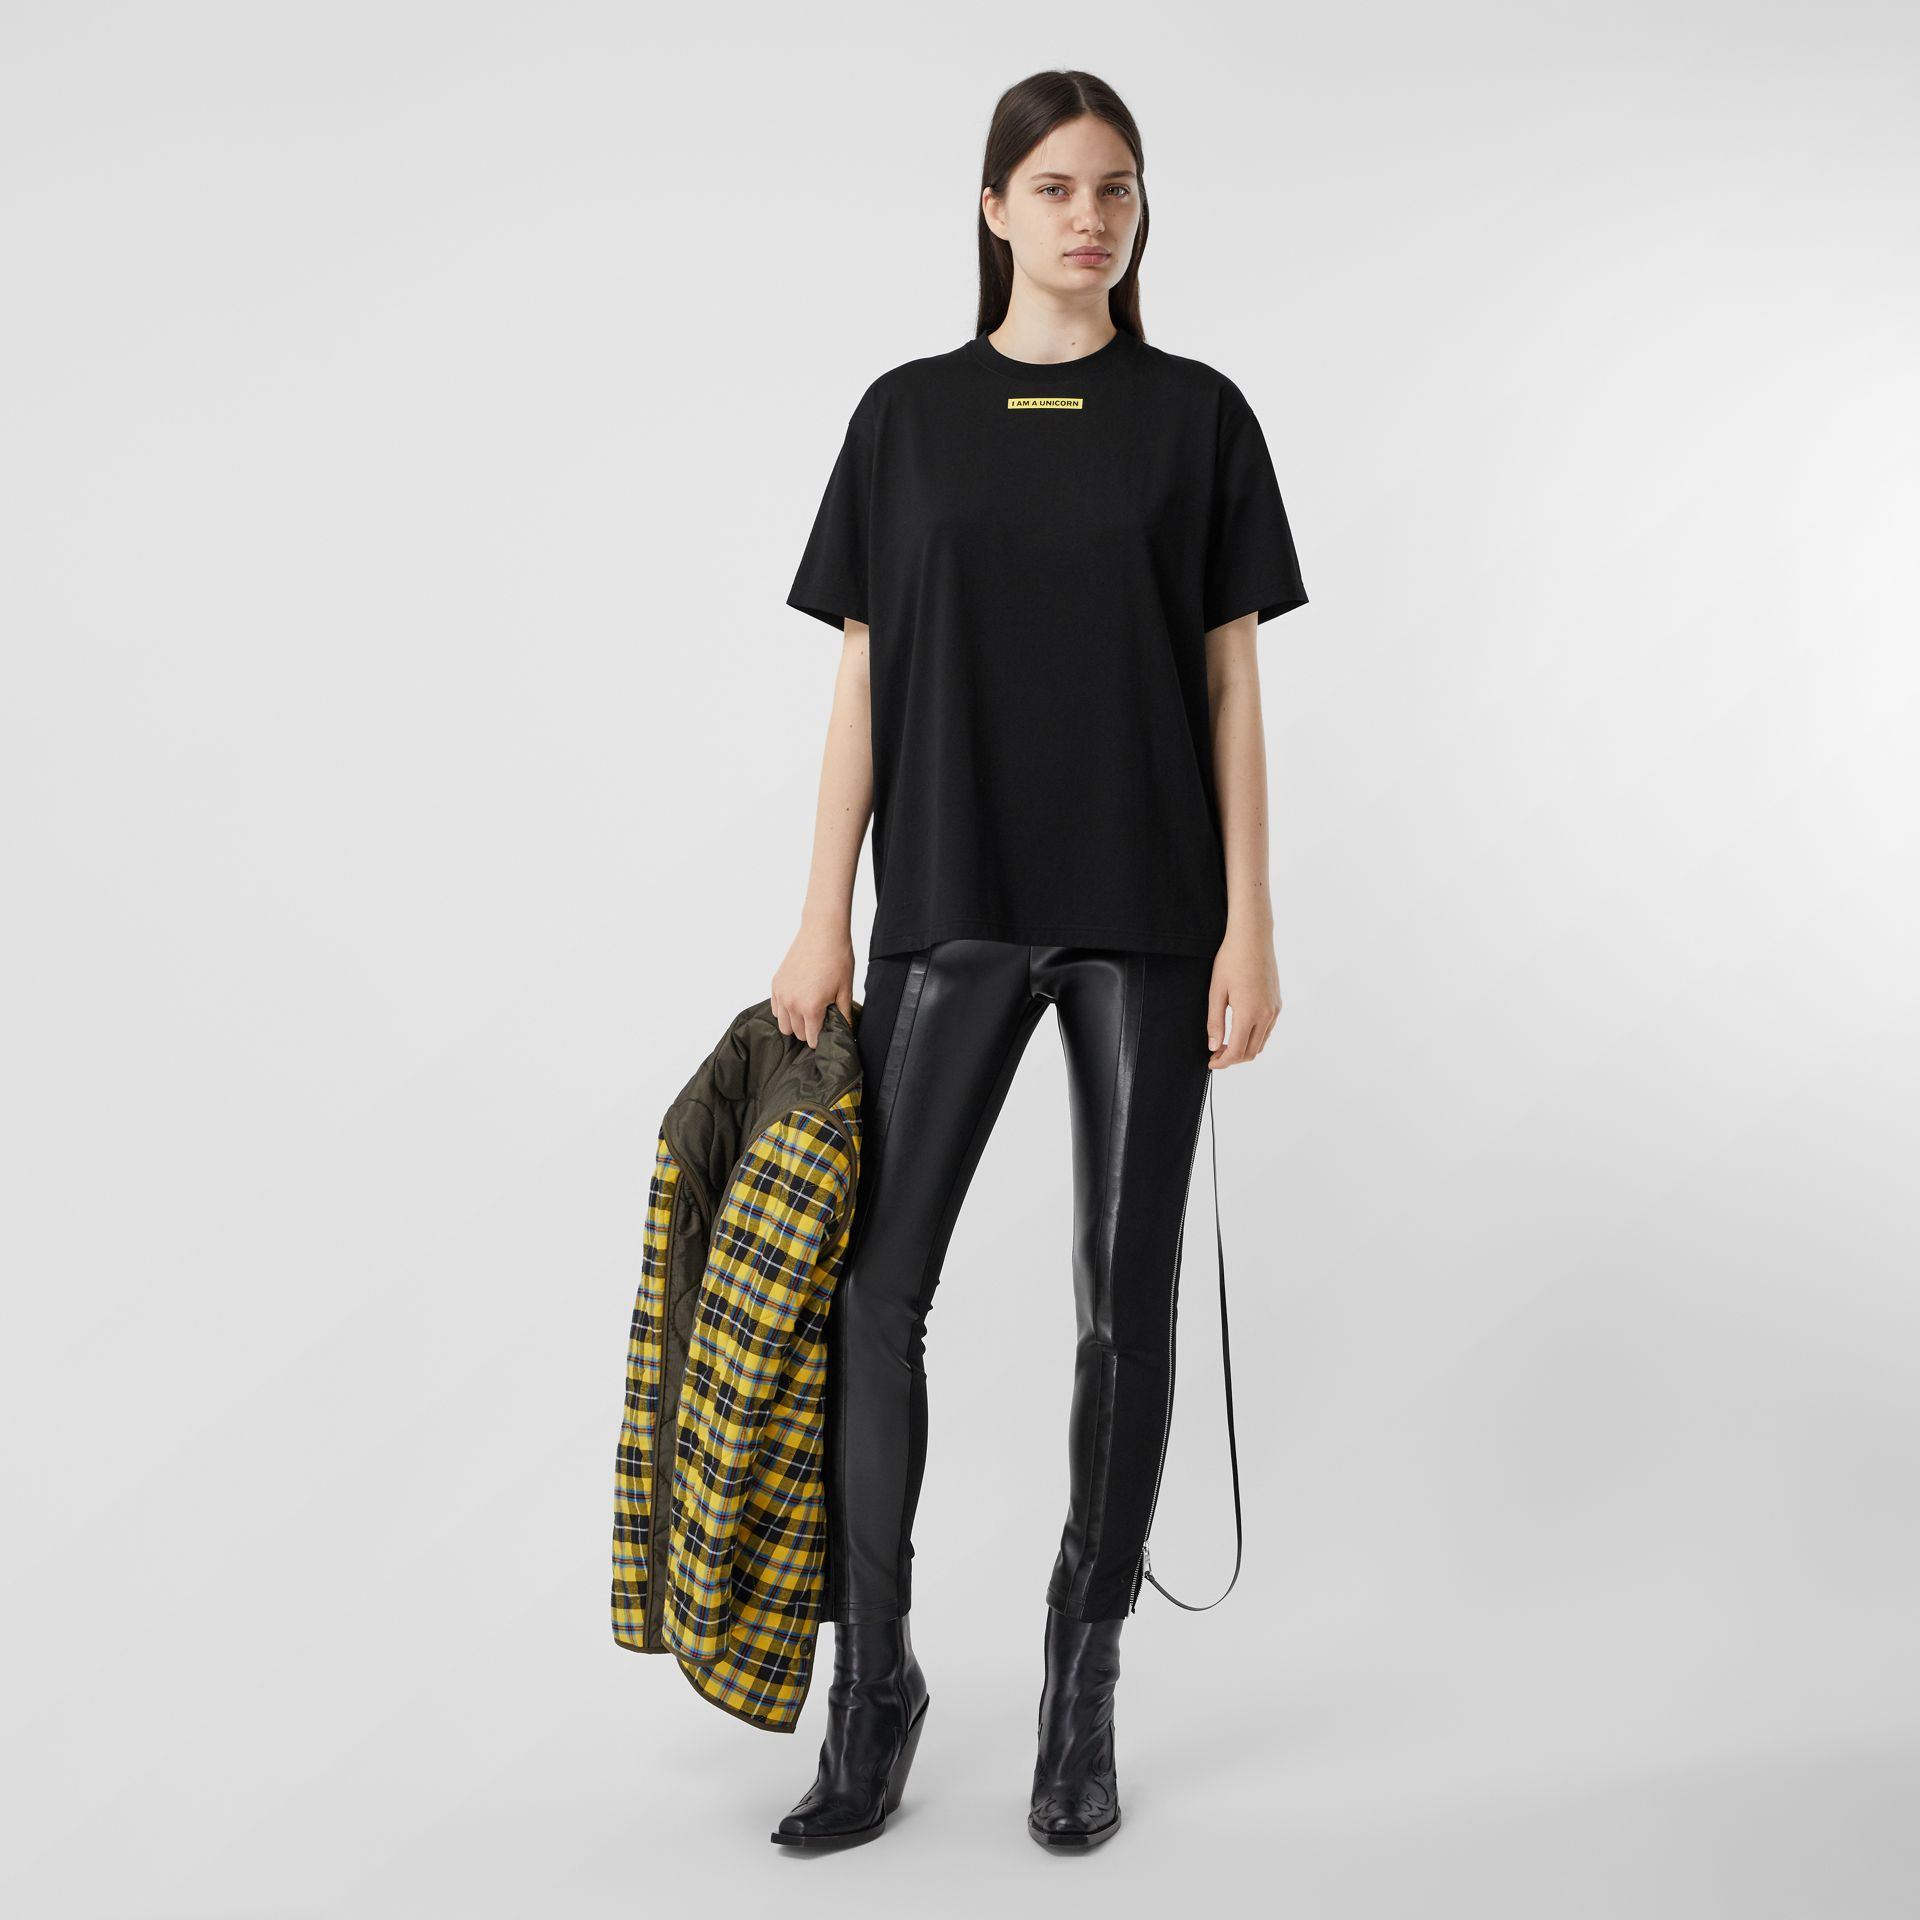 Slogan Print Oversized T-shirt – Online Exclusive in Black - Women | Burberry - gallery image 4